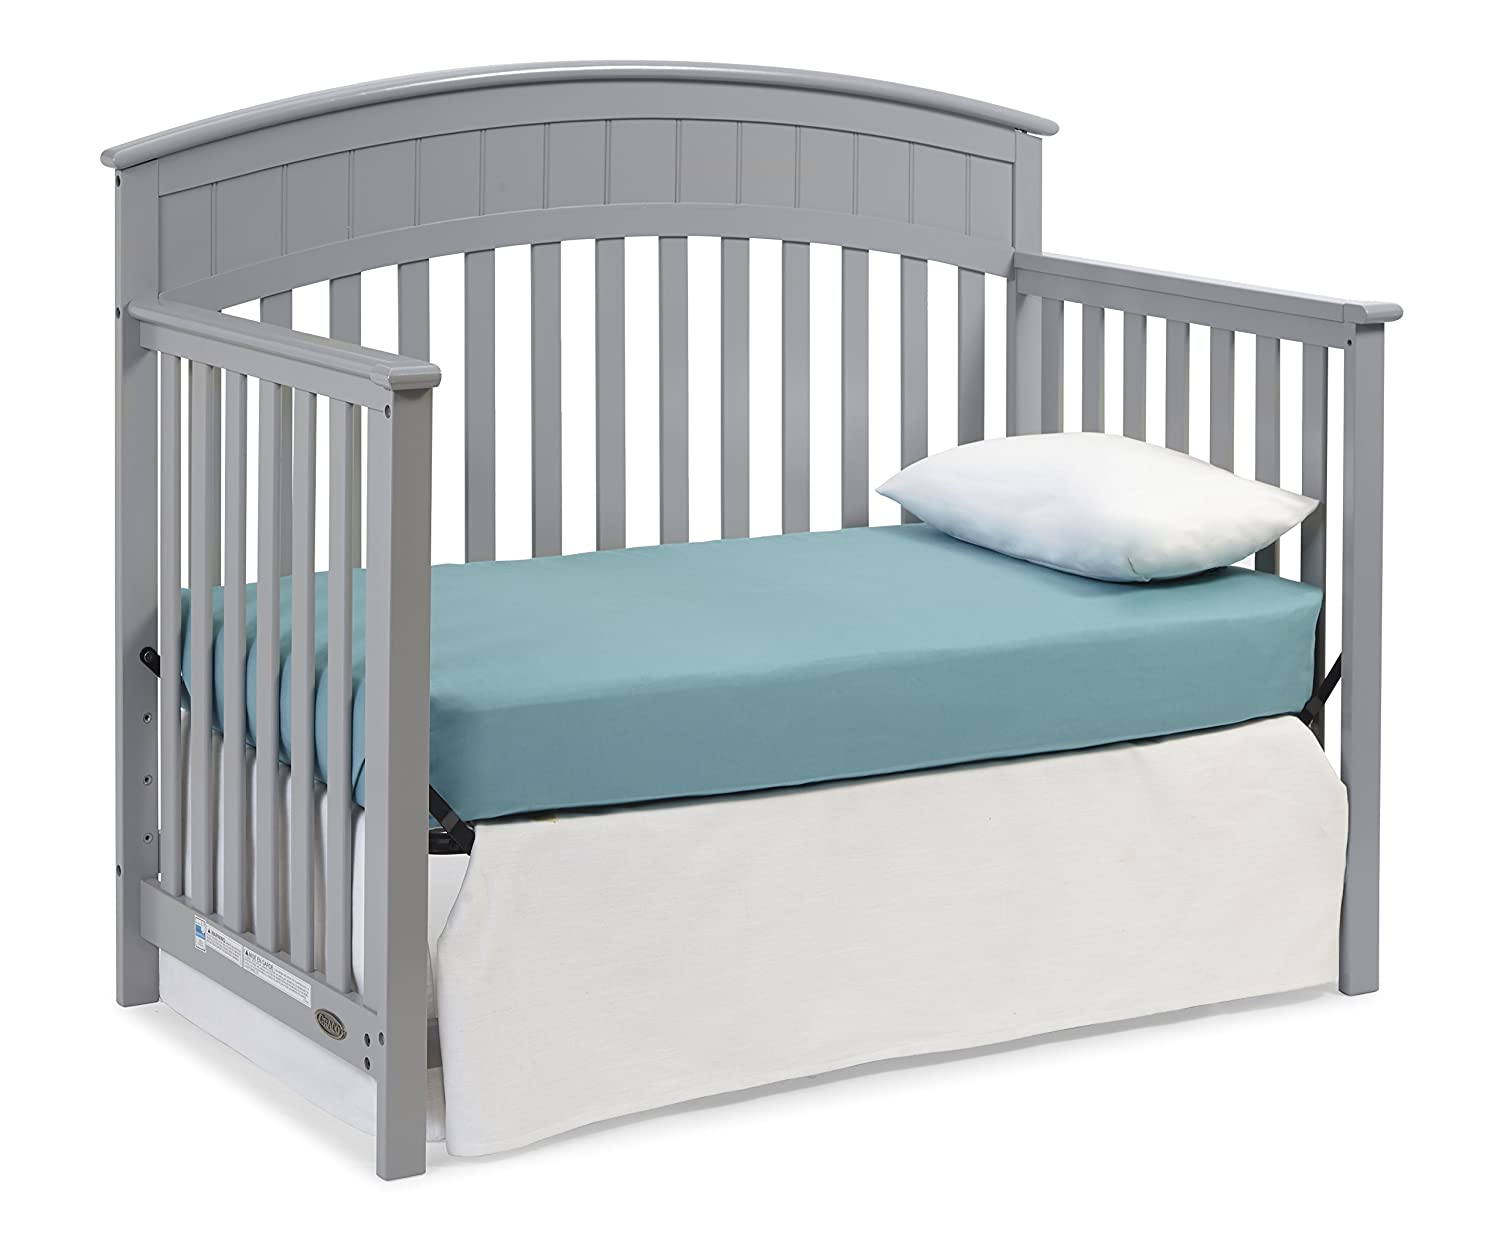 designs crib cribs washable shabby furniture baby gingham duvet mint cellular design sheep green graco chic circus sweet home machine interior signature delightful standard lauren joj neutral